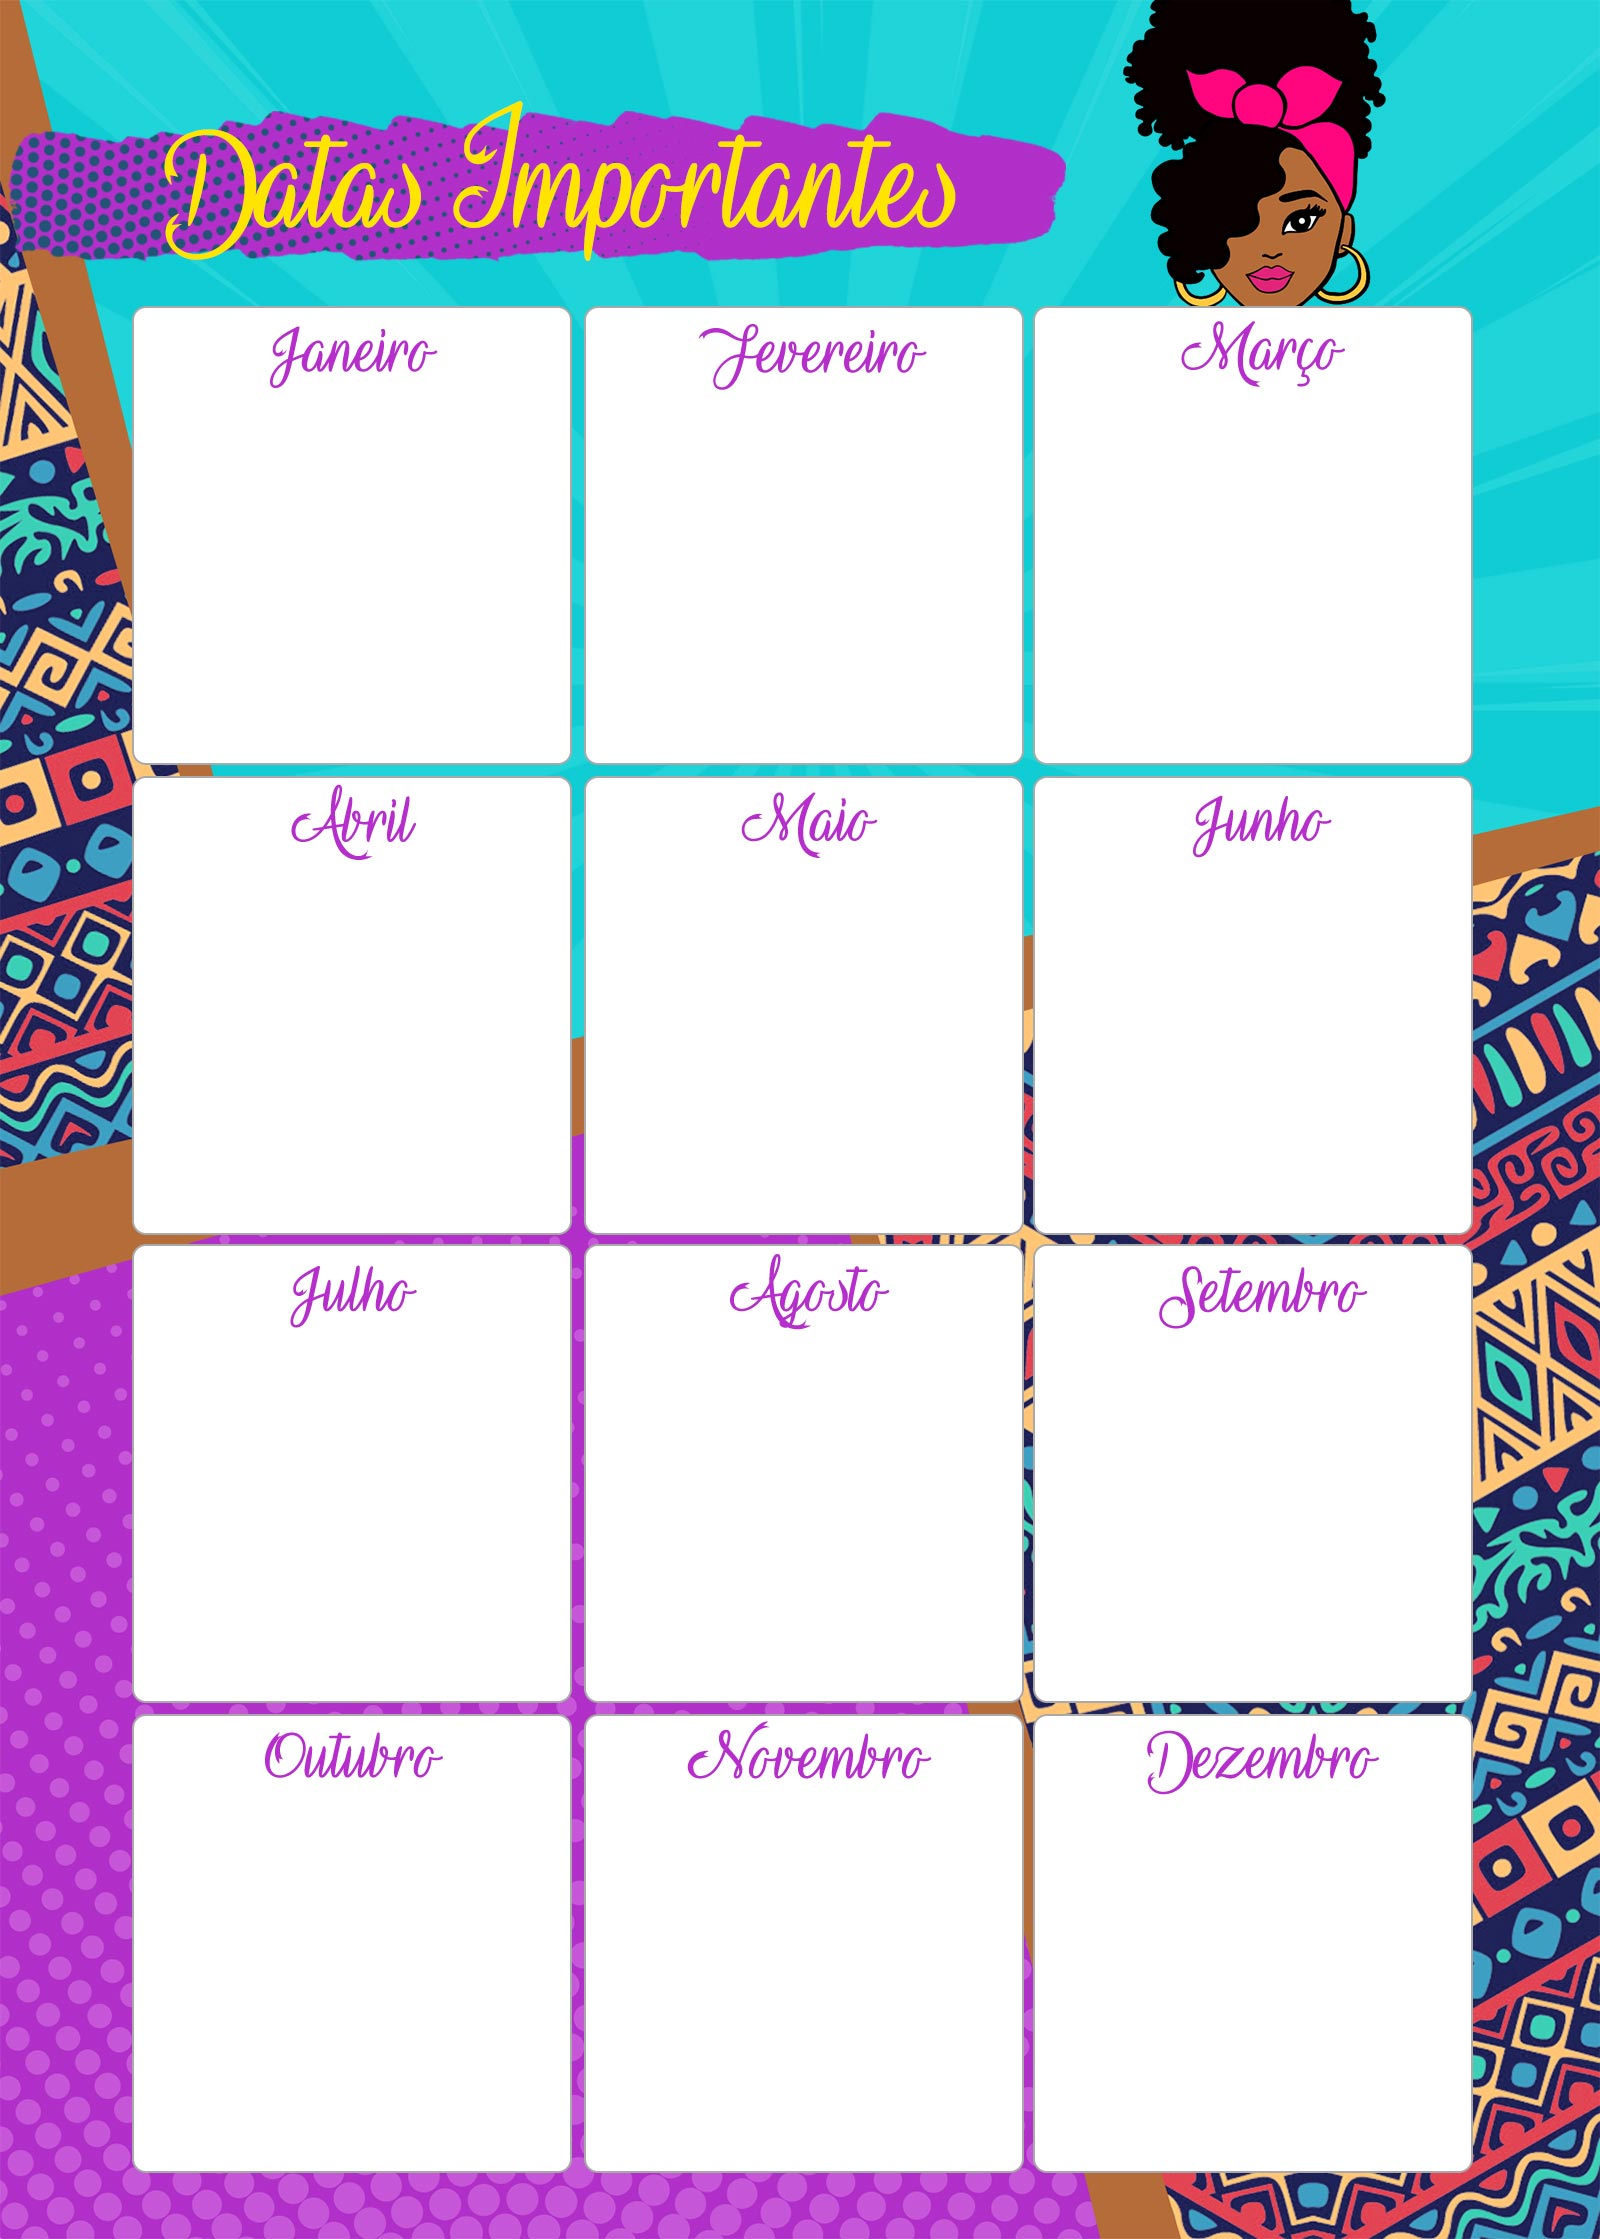 Planner Mulher Afro datas importantes